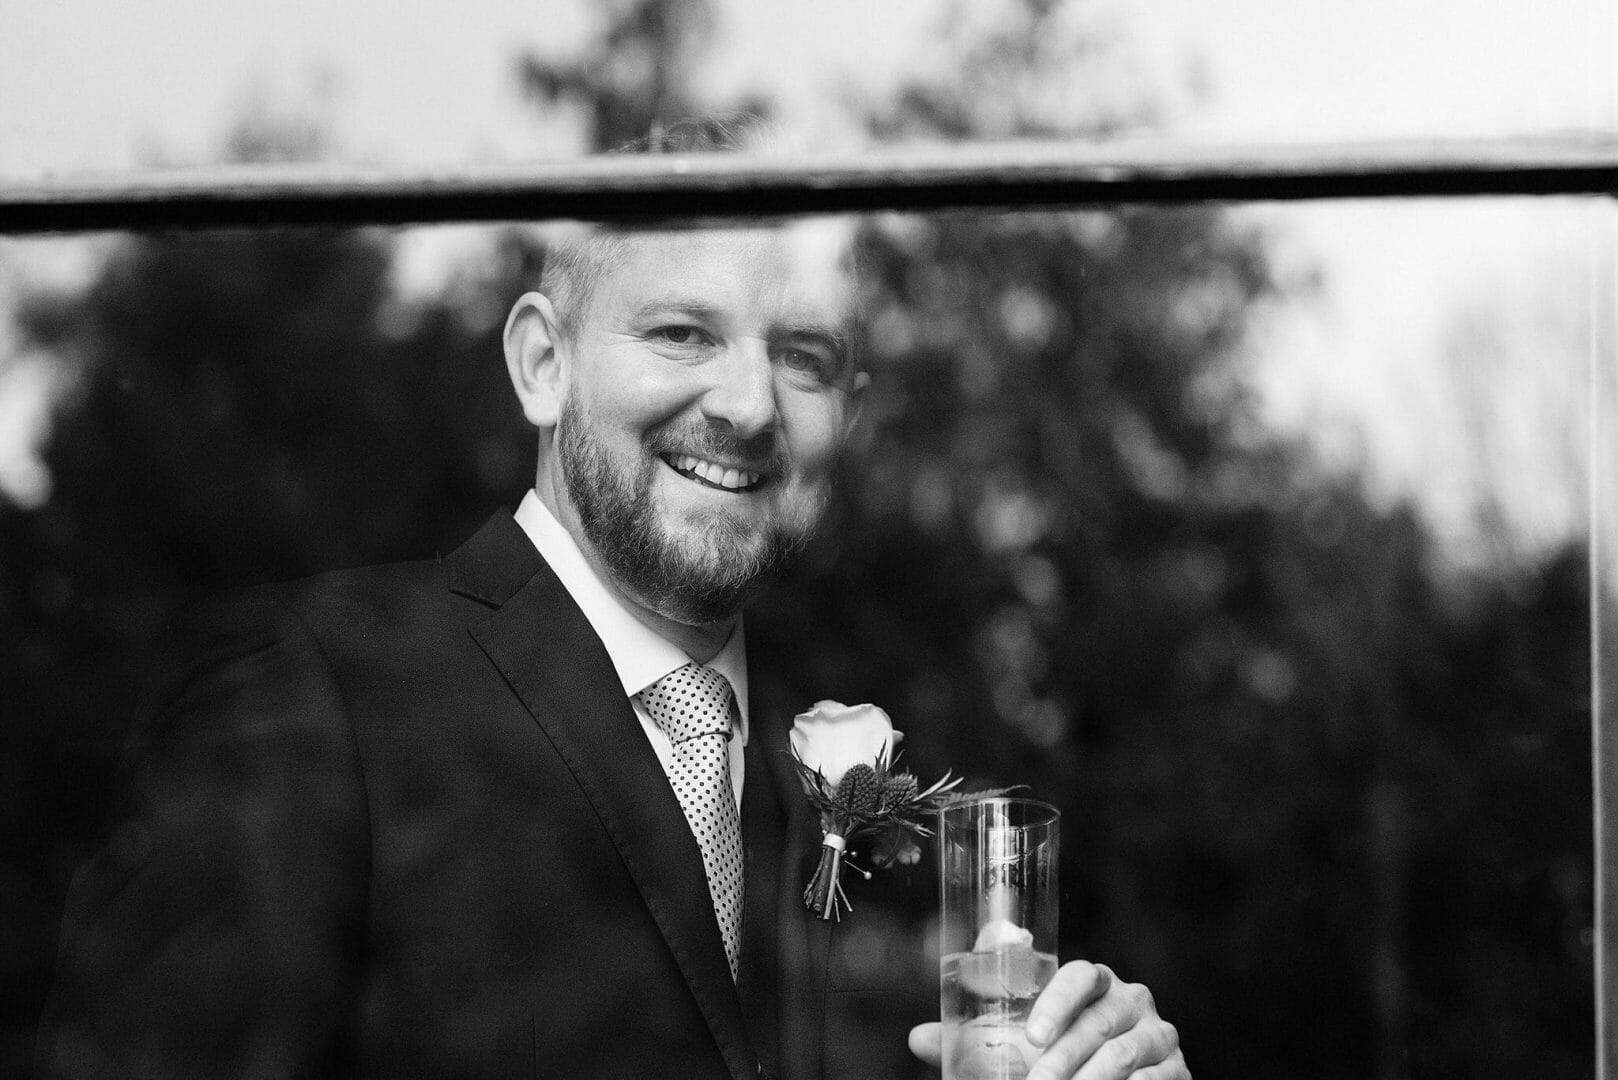 Groom stands by the window at the Larmertree Gardens – Wiltshire wedding